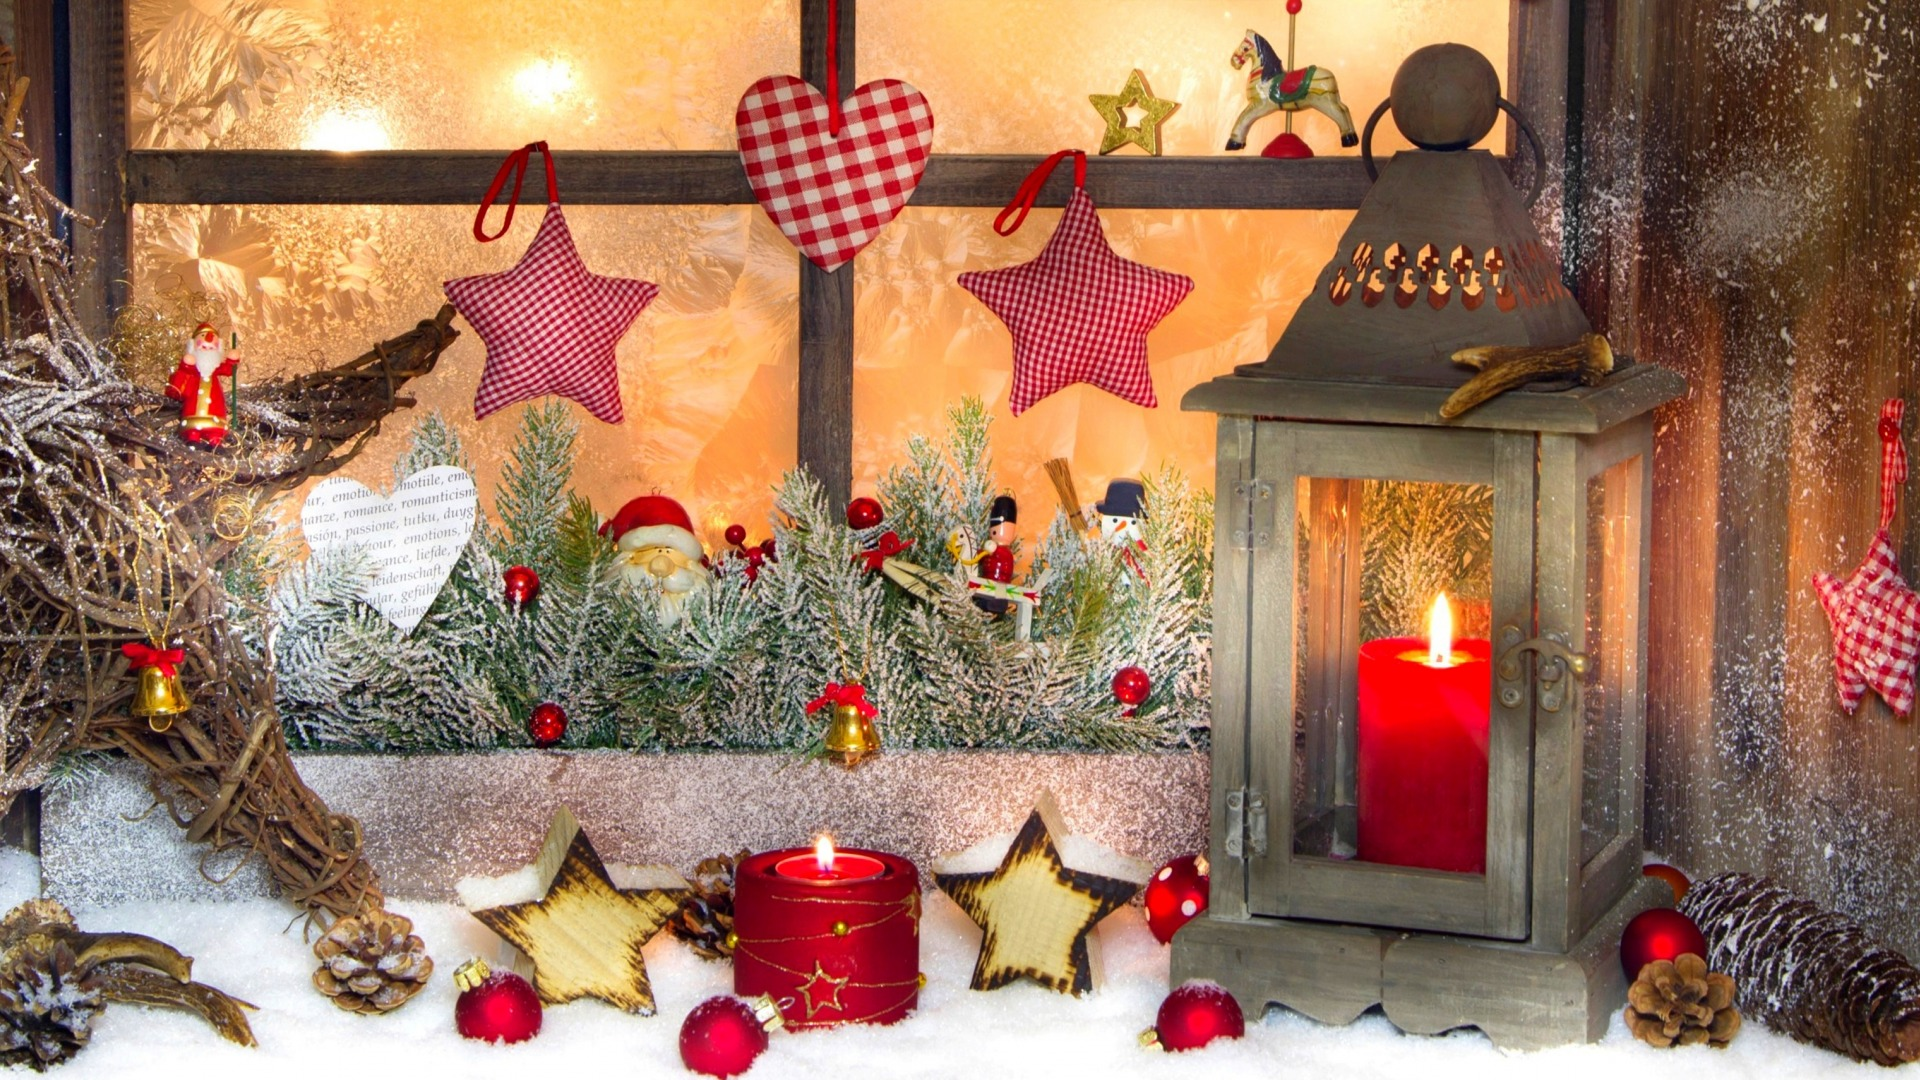 Download-winter-snow-holiday-heart-star-candles-Christmas-lantern-New-year-star-wallpaper-wpc5804388